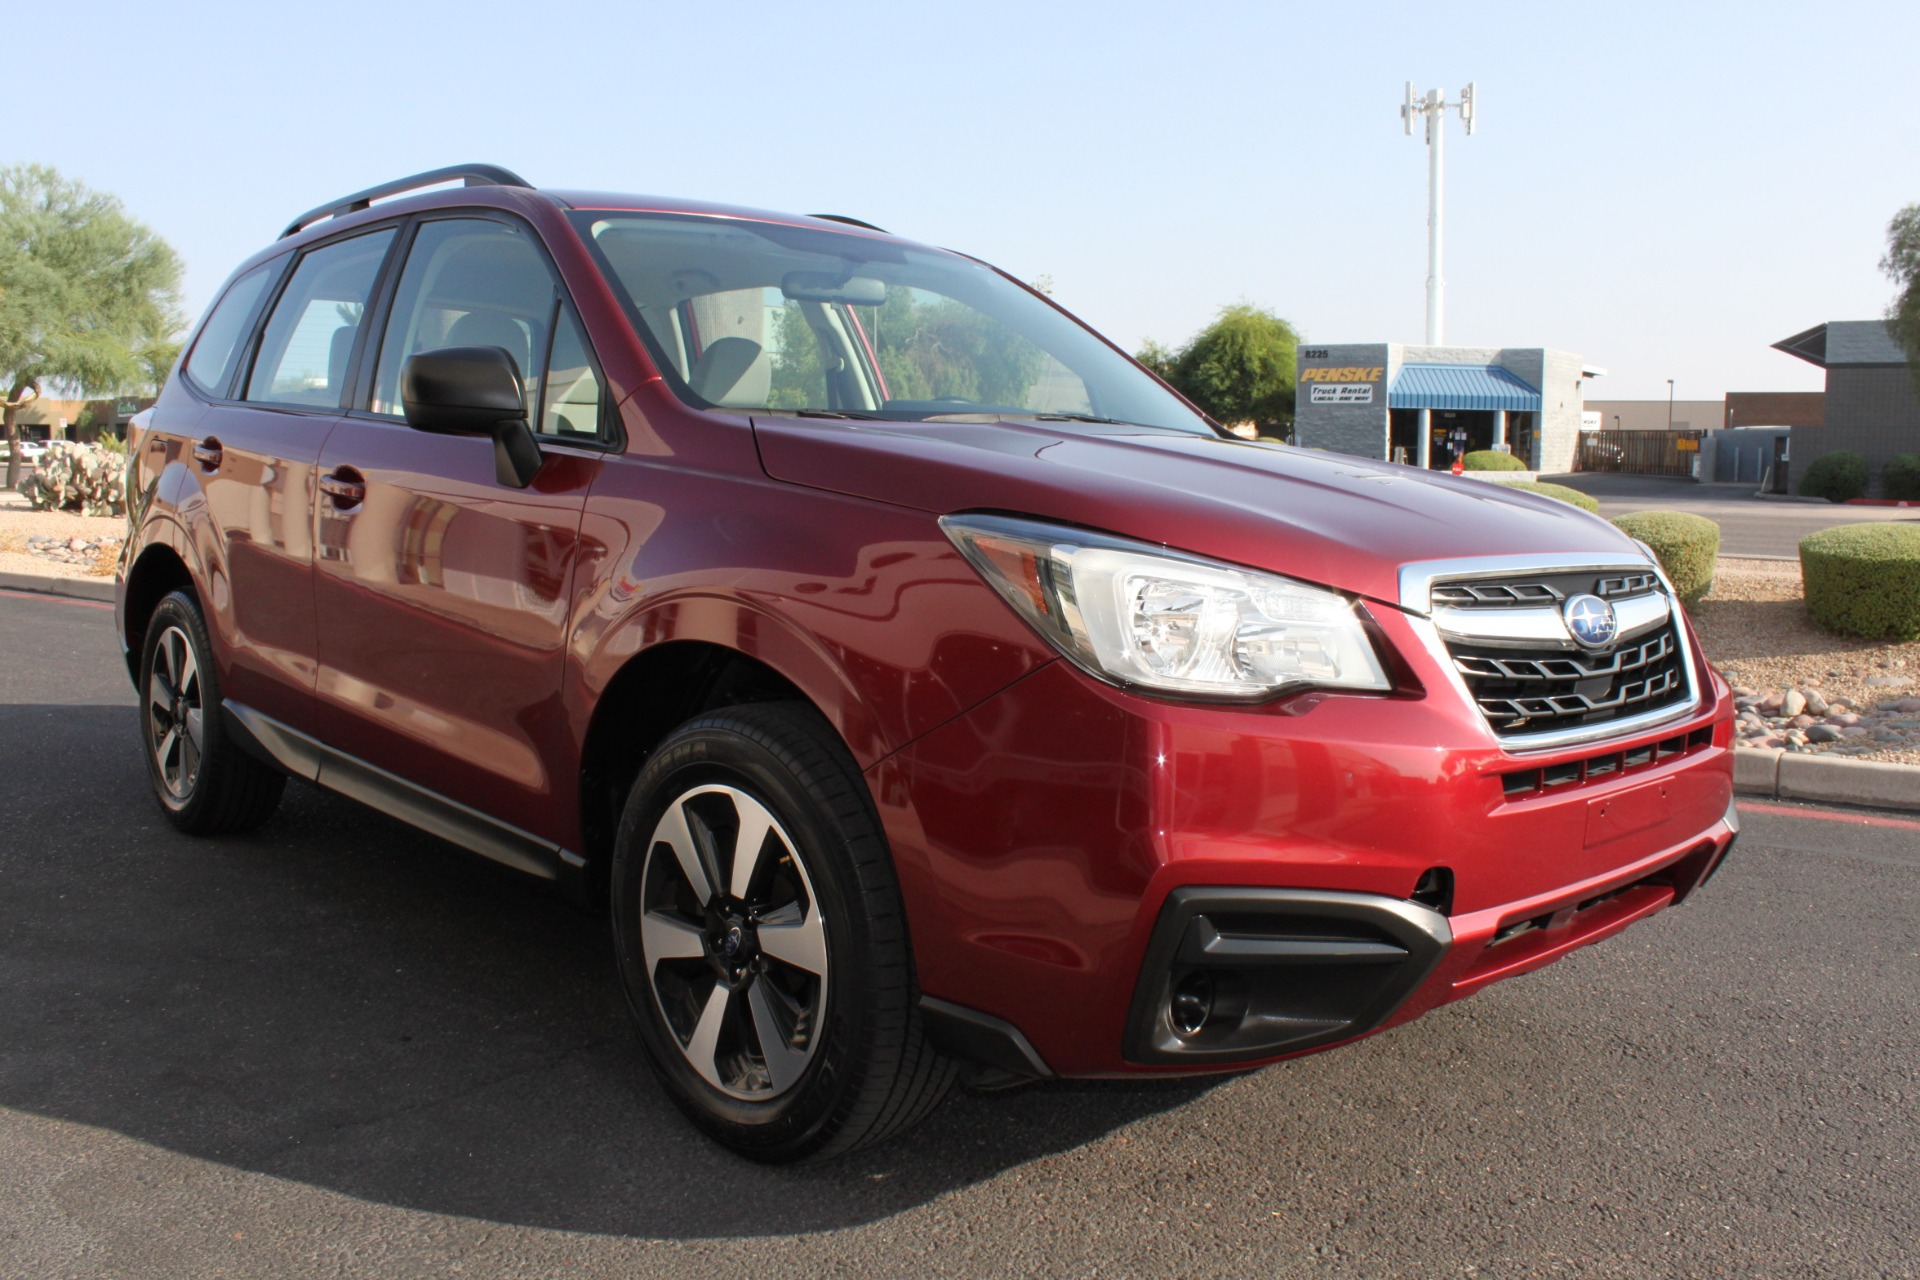 Used-2017-Subaru-Forester-25i-All-Wheel-Drive-Mercedes-Benz